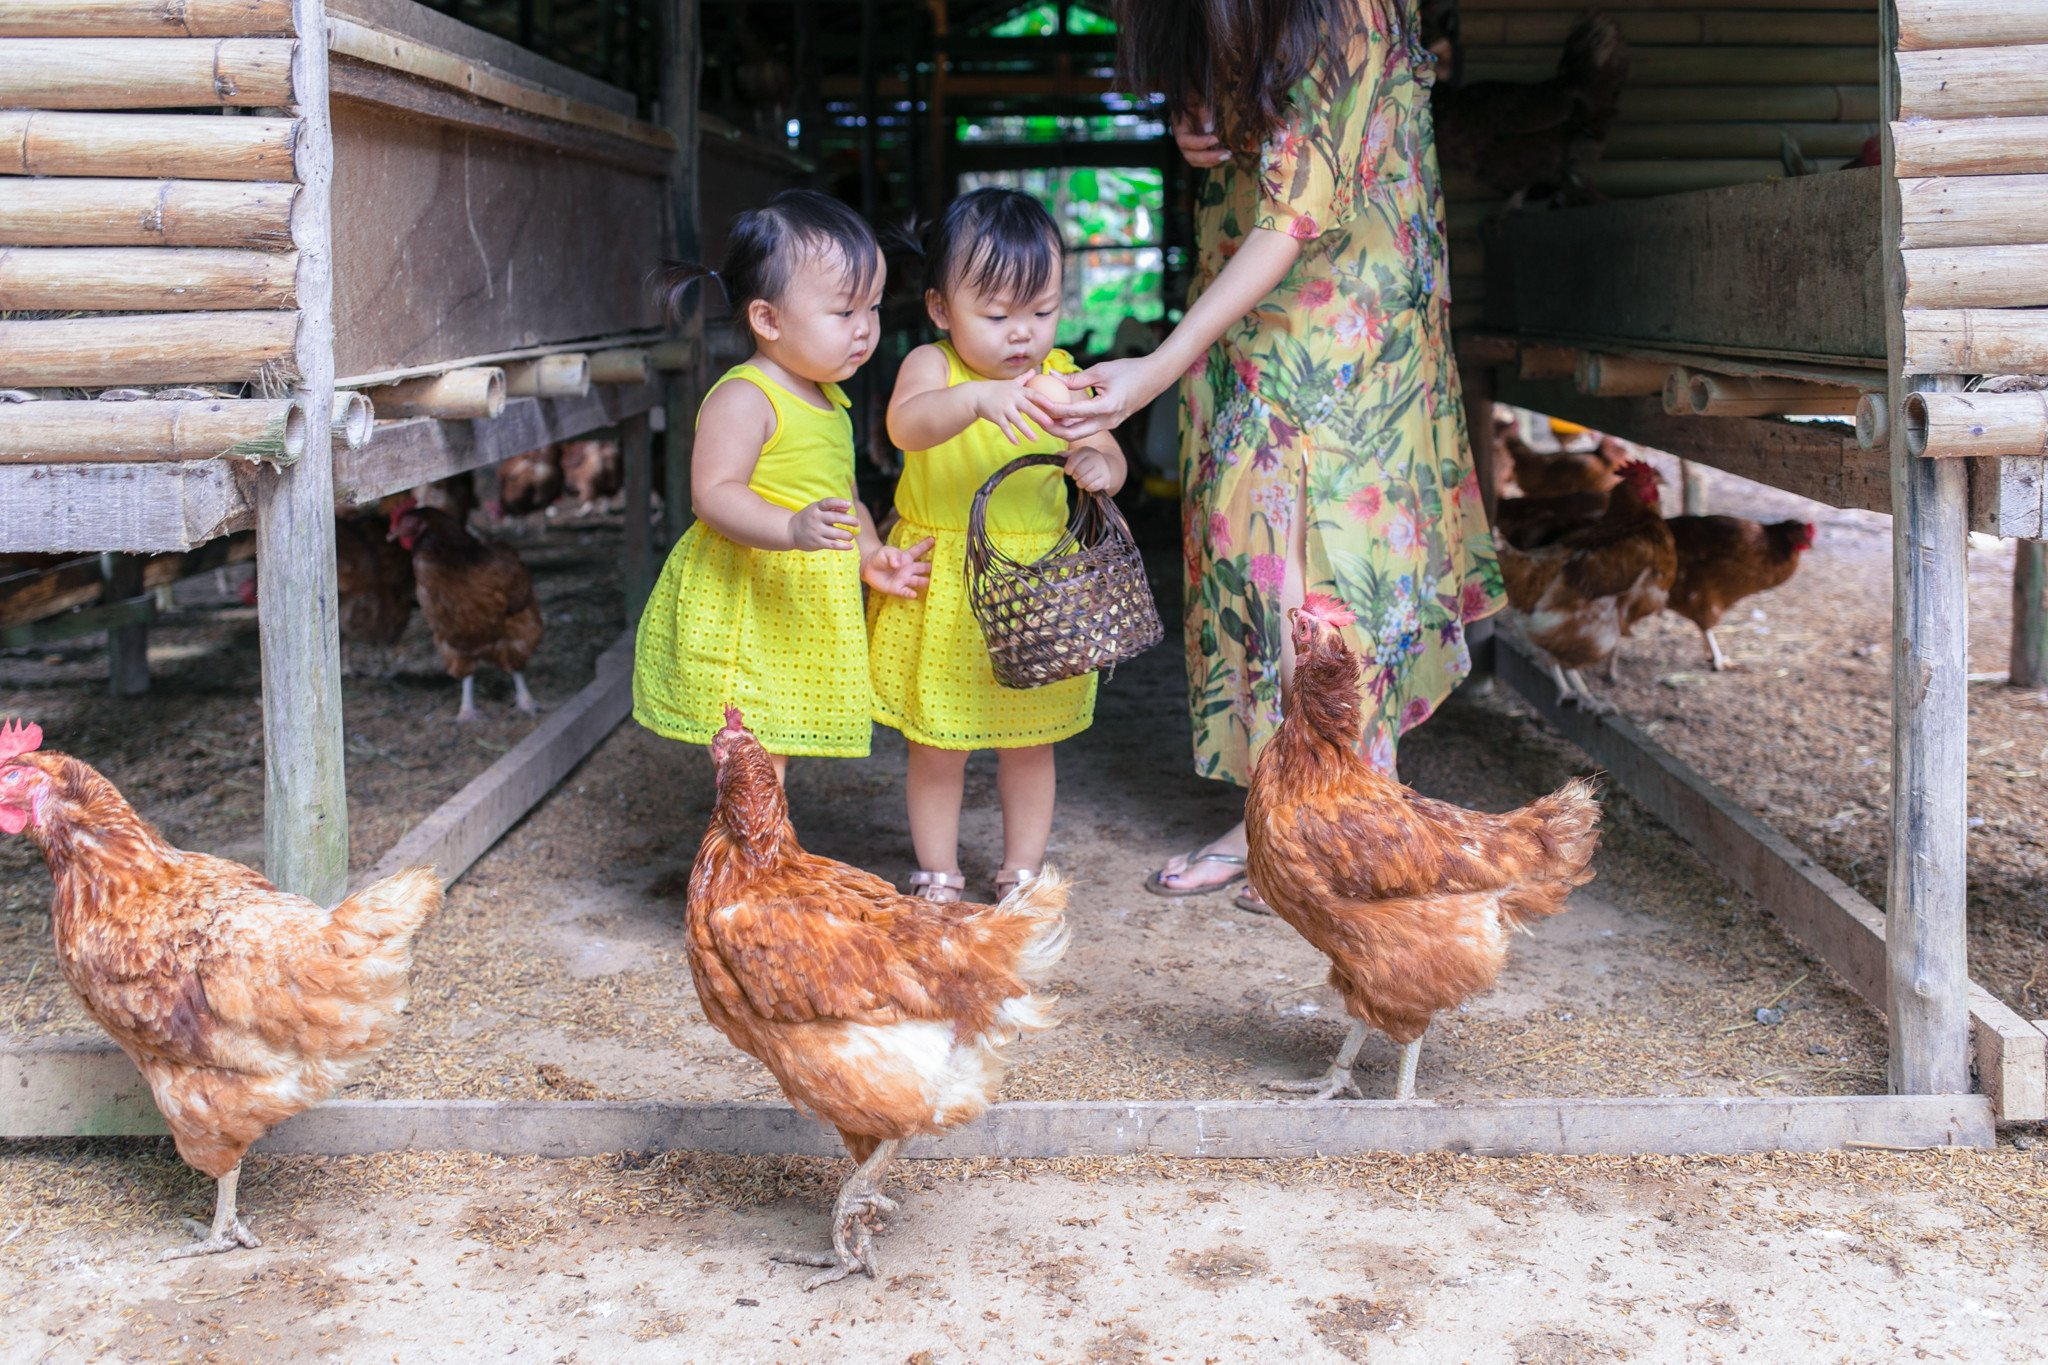 Collecting their own fresh eggs for breakfast from the little chicken farm in the resort!